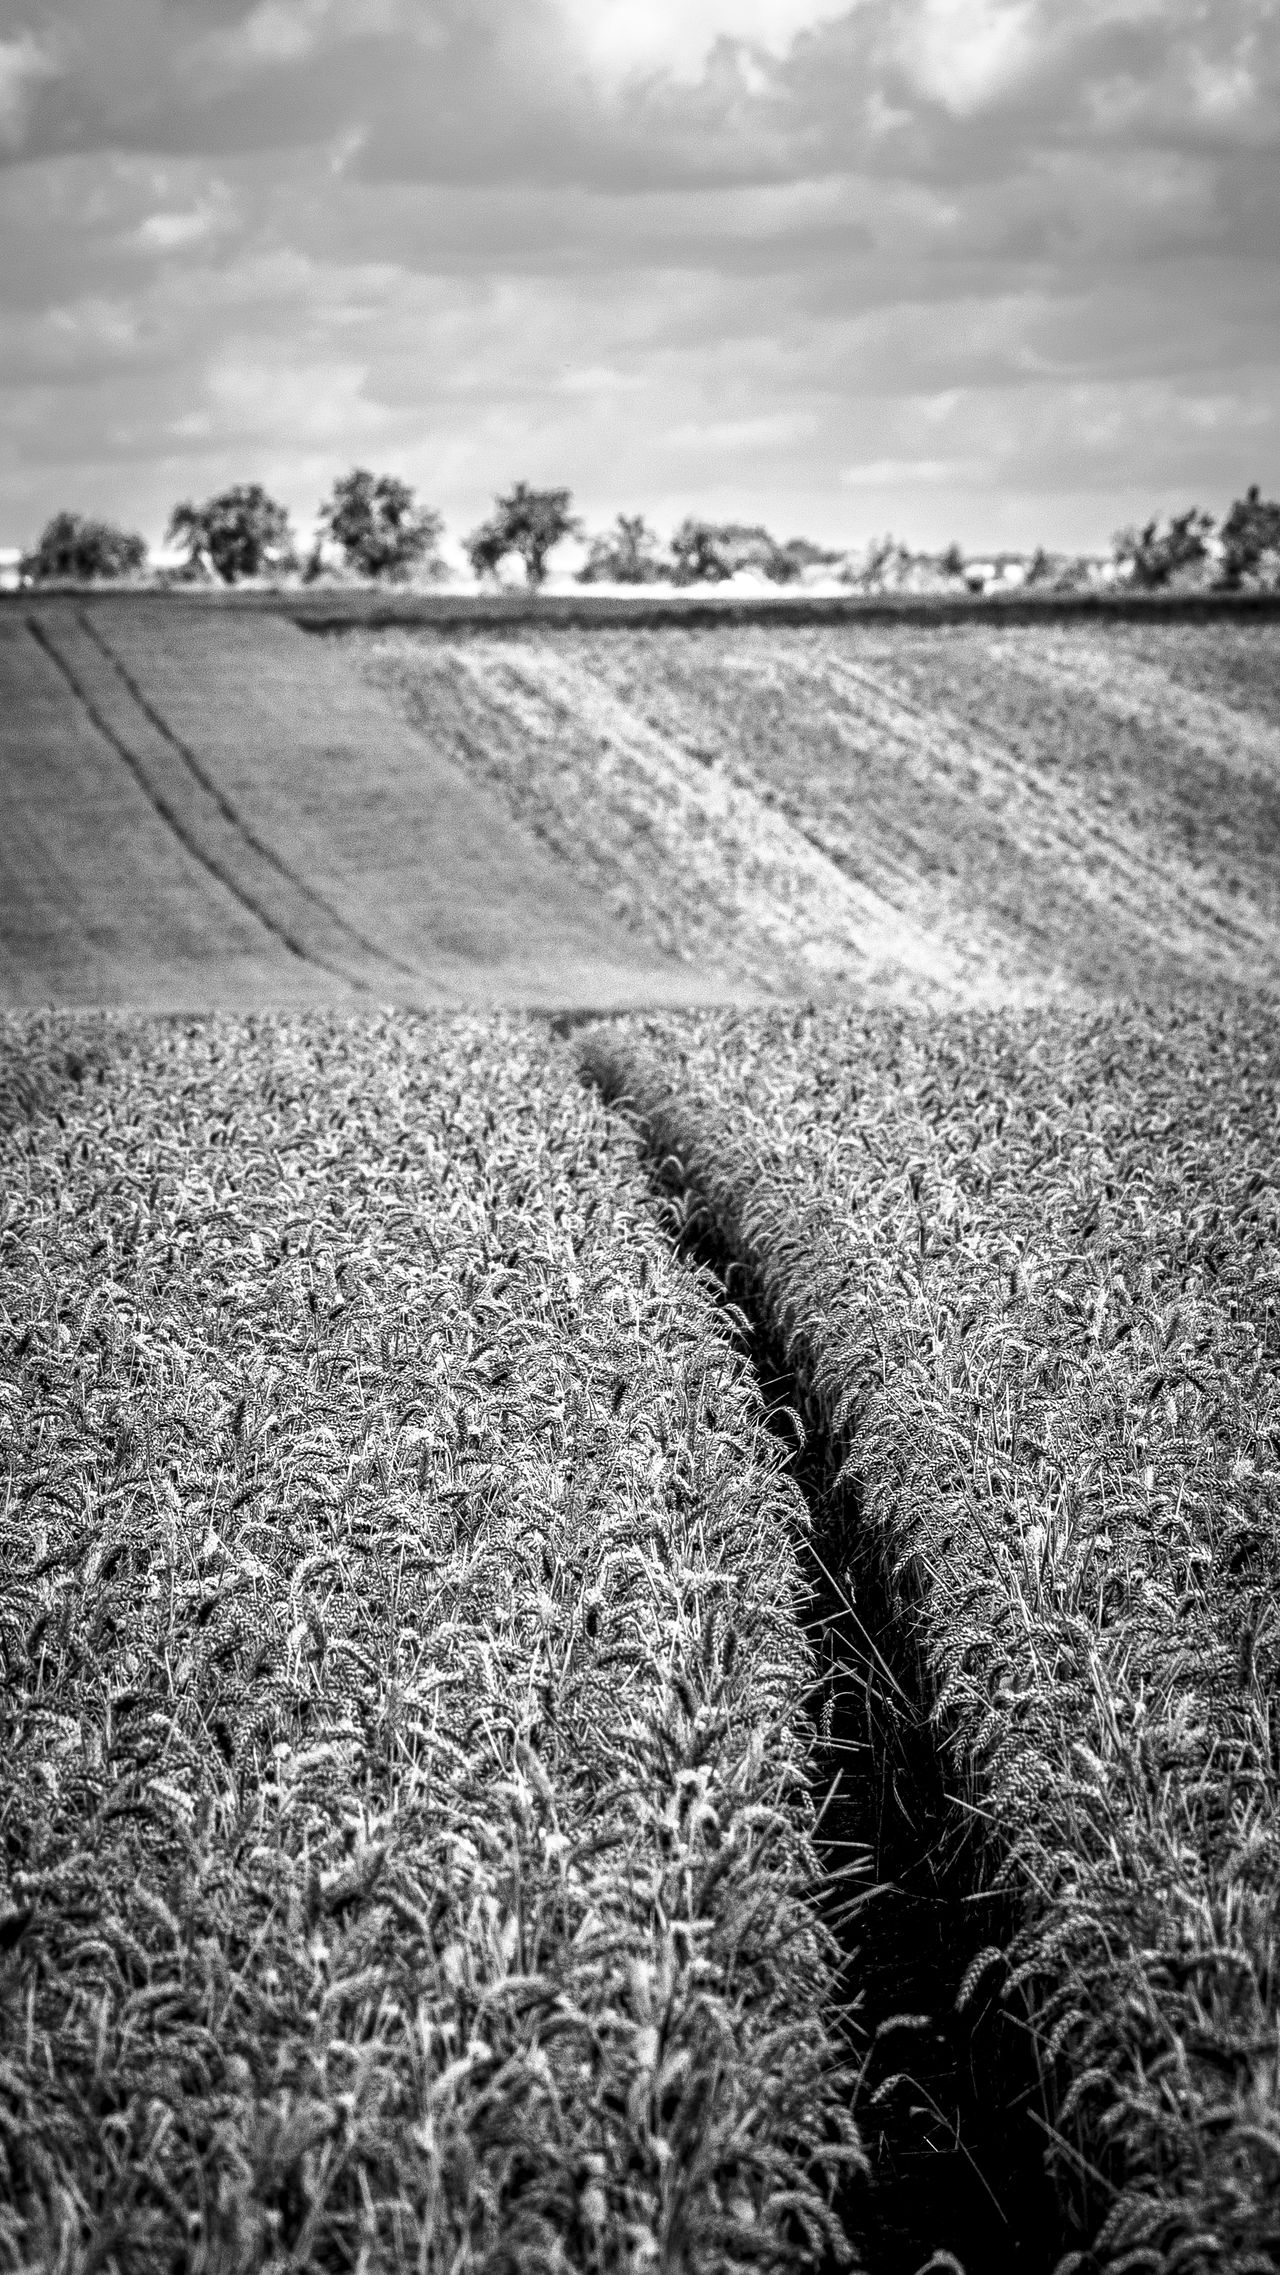 Field Agricultural Land Agriculture Beauty In Nature Black Black And White Blackandwhite Close-up Cloud - Sky Countryside Day EyeEm Best Shots Field Germany Growth Landscape Nature Nature No People Outdoors Scenics Sky Tranquil Scene Tree Wheat Wheat Field